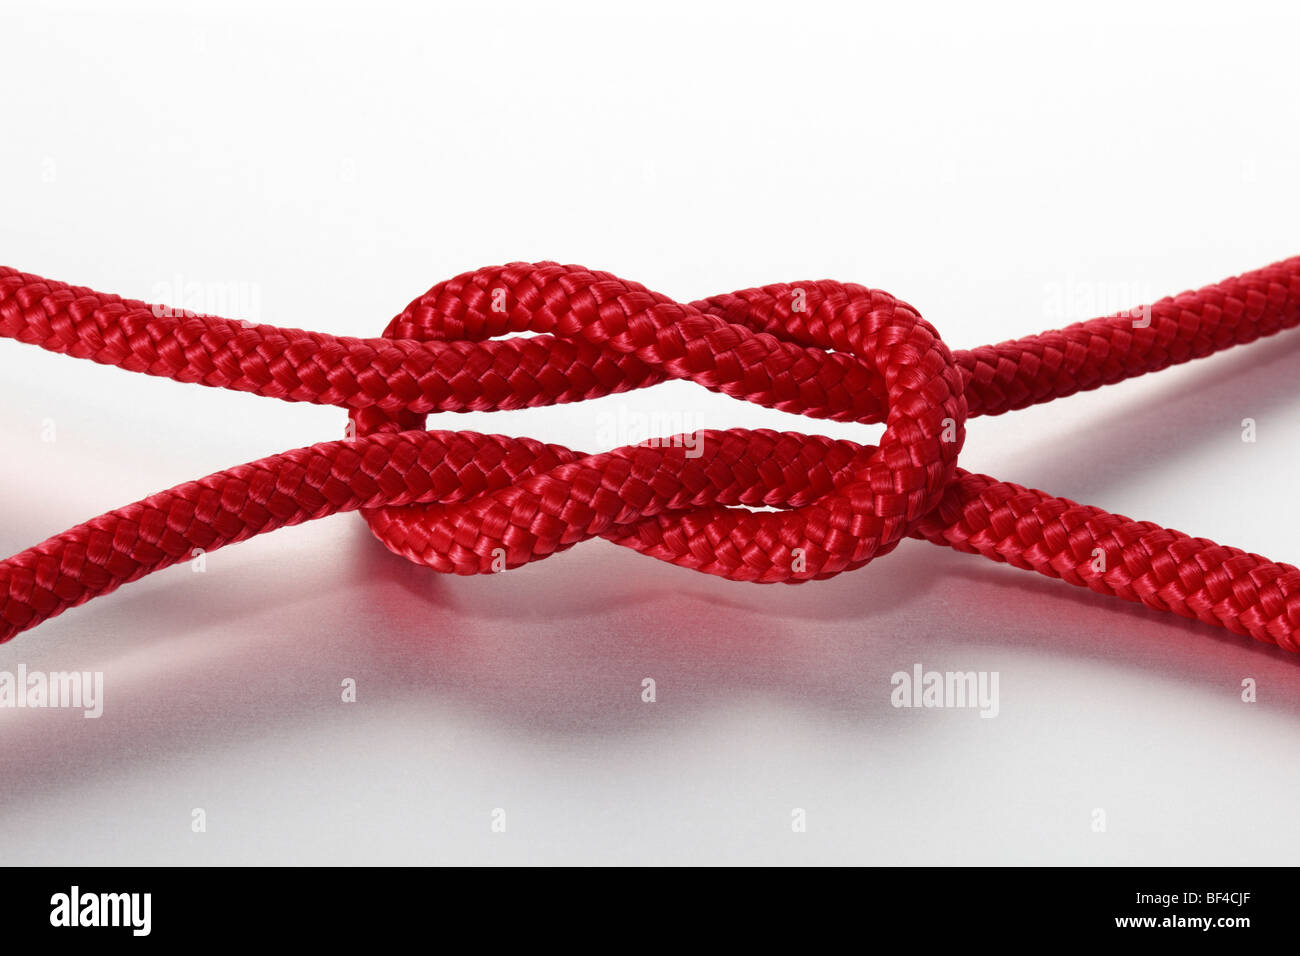 reef knot - Stock Image